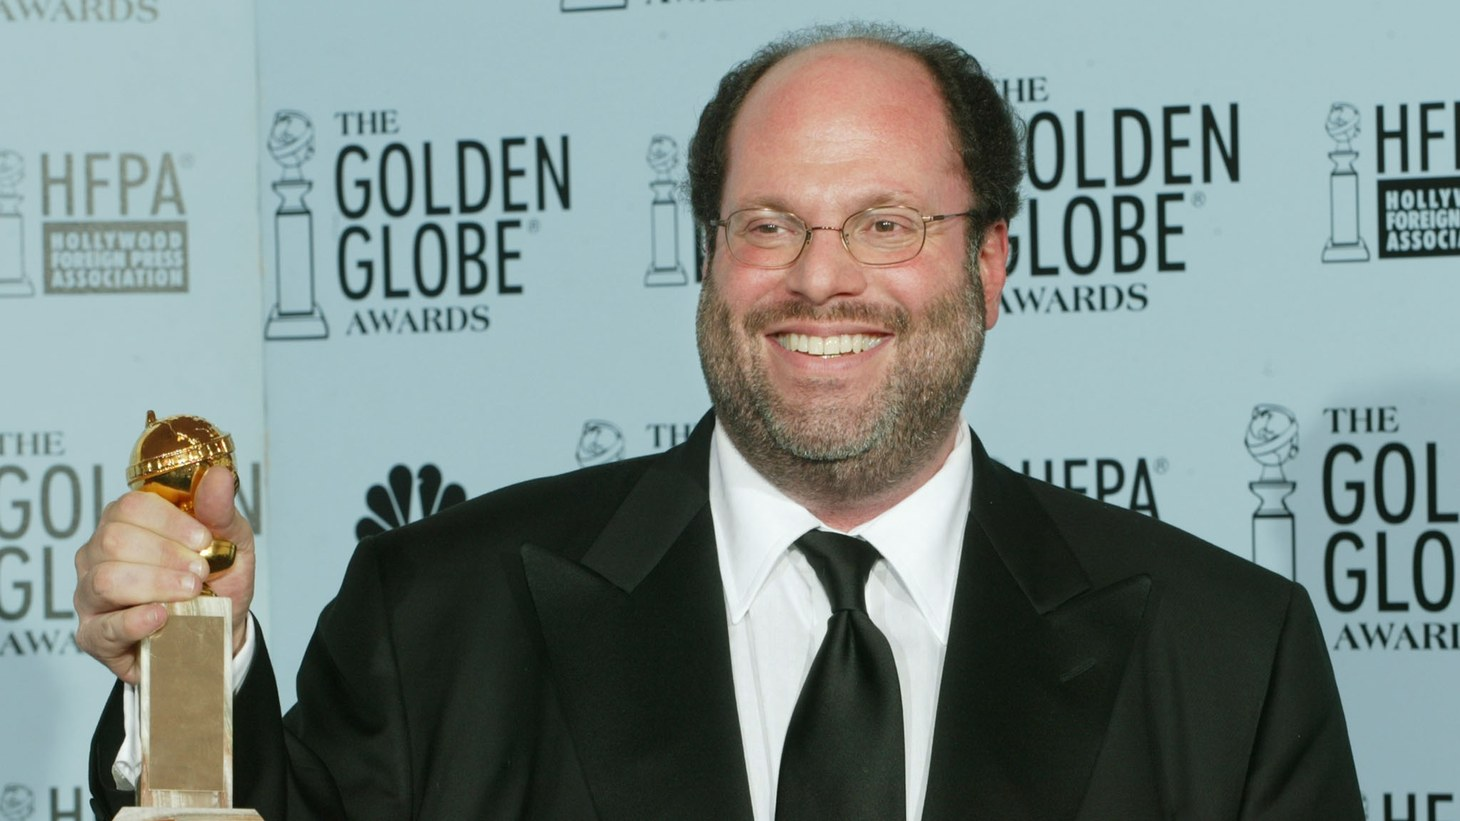 """January 19, 2003: Producer Scott Rudin holds an award he won for his film """"The Hours"""" at the 60th annual Golden Globe Awards in Beverly Hills, California."""